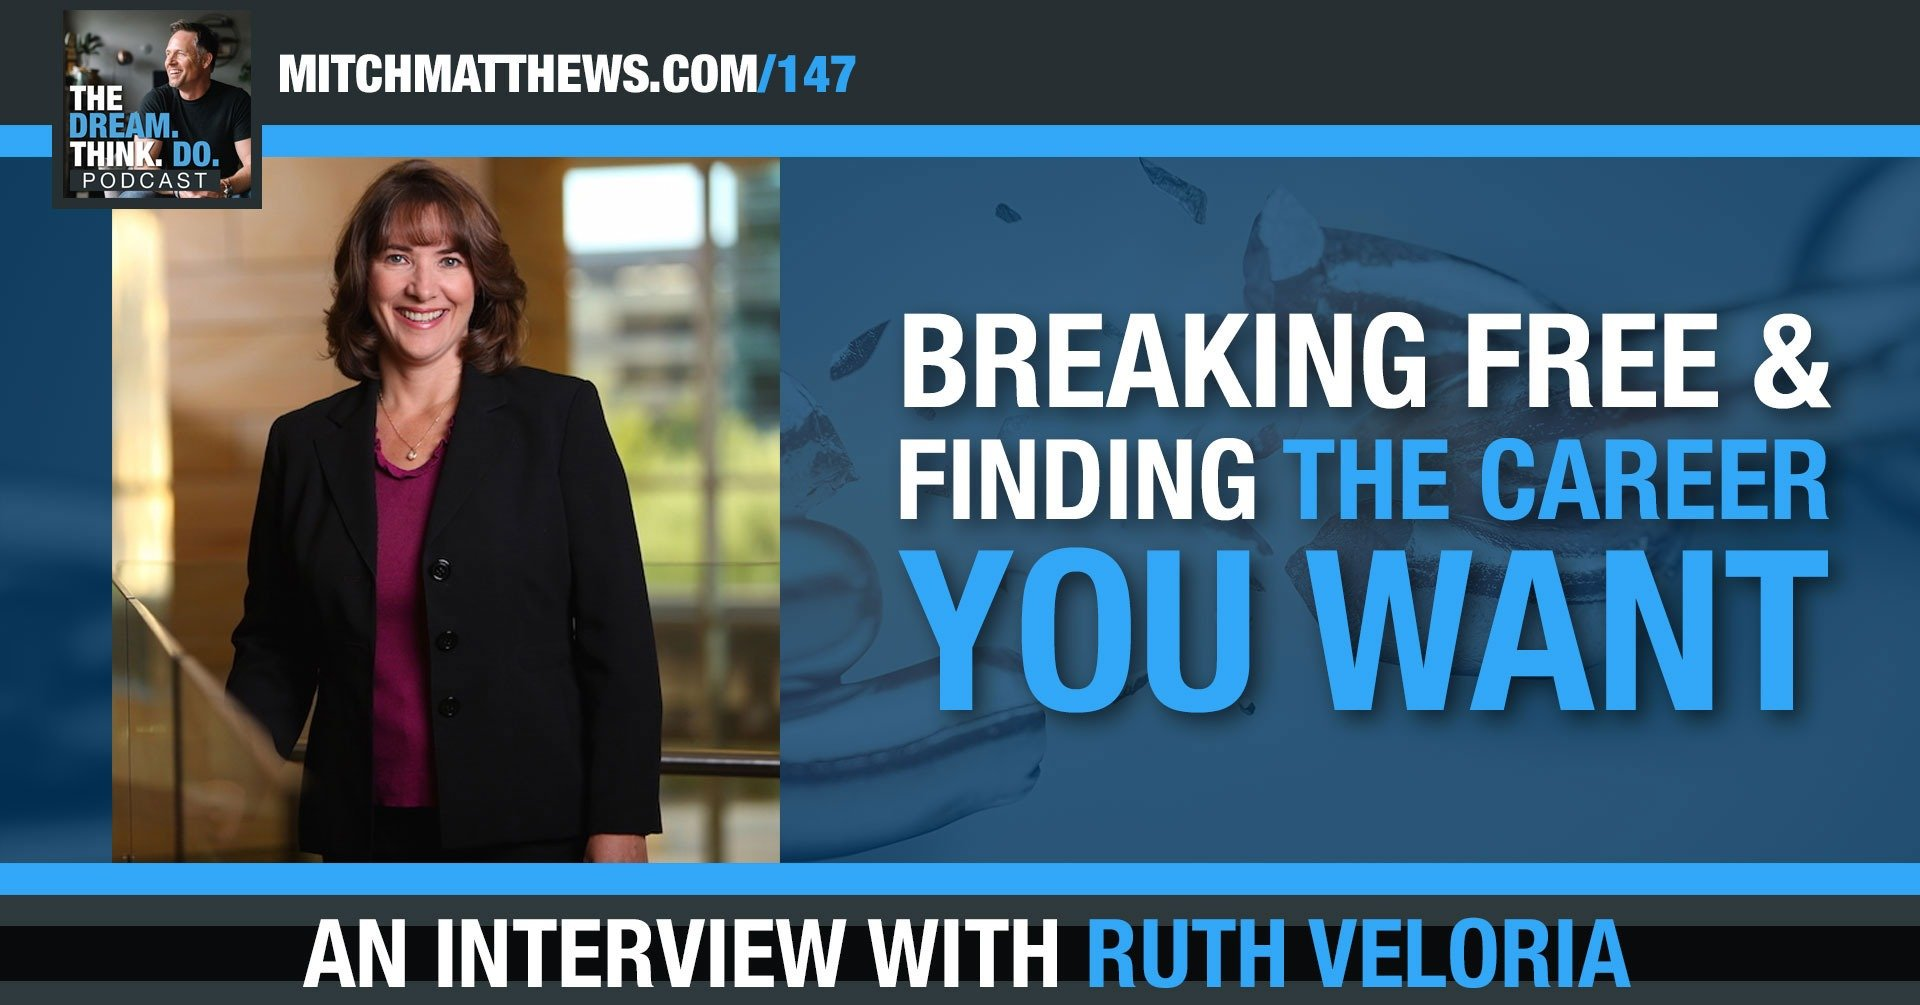 An interview with Ruth Veloria